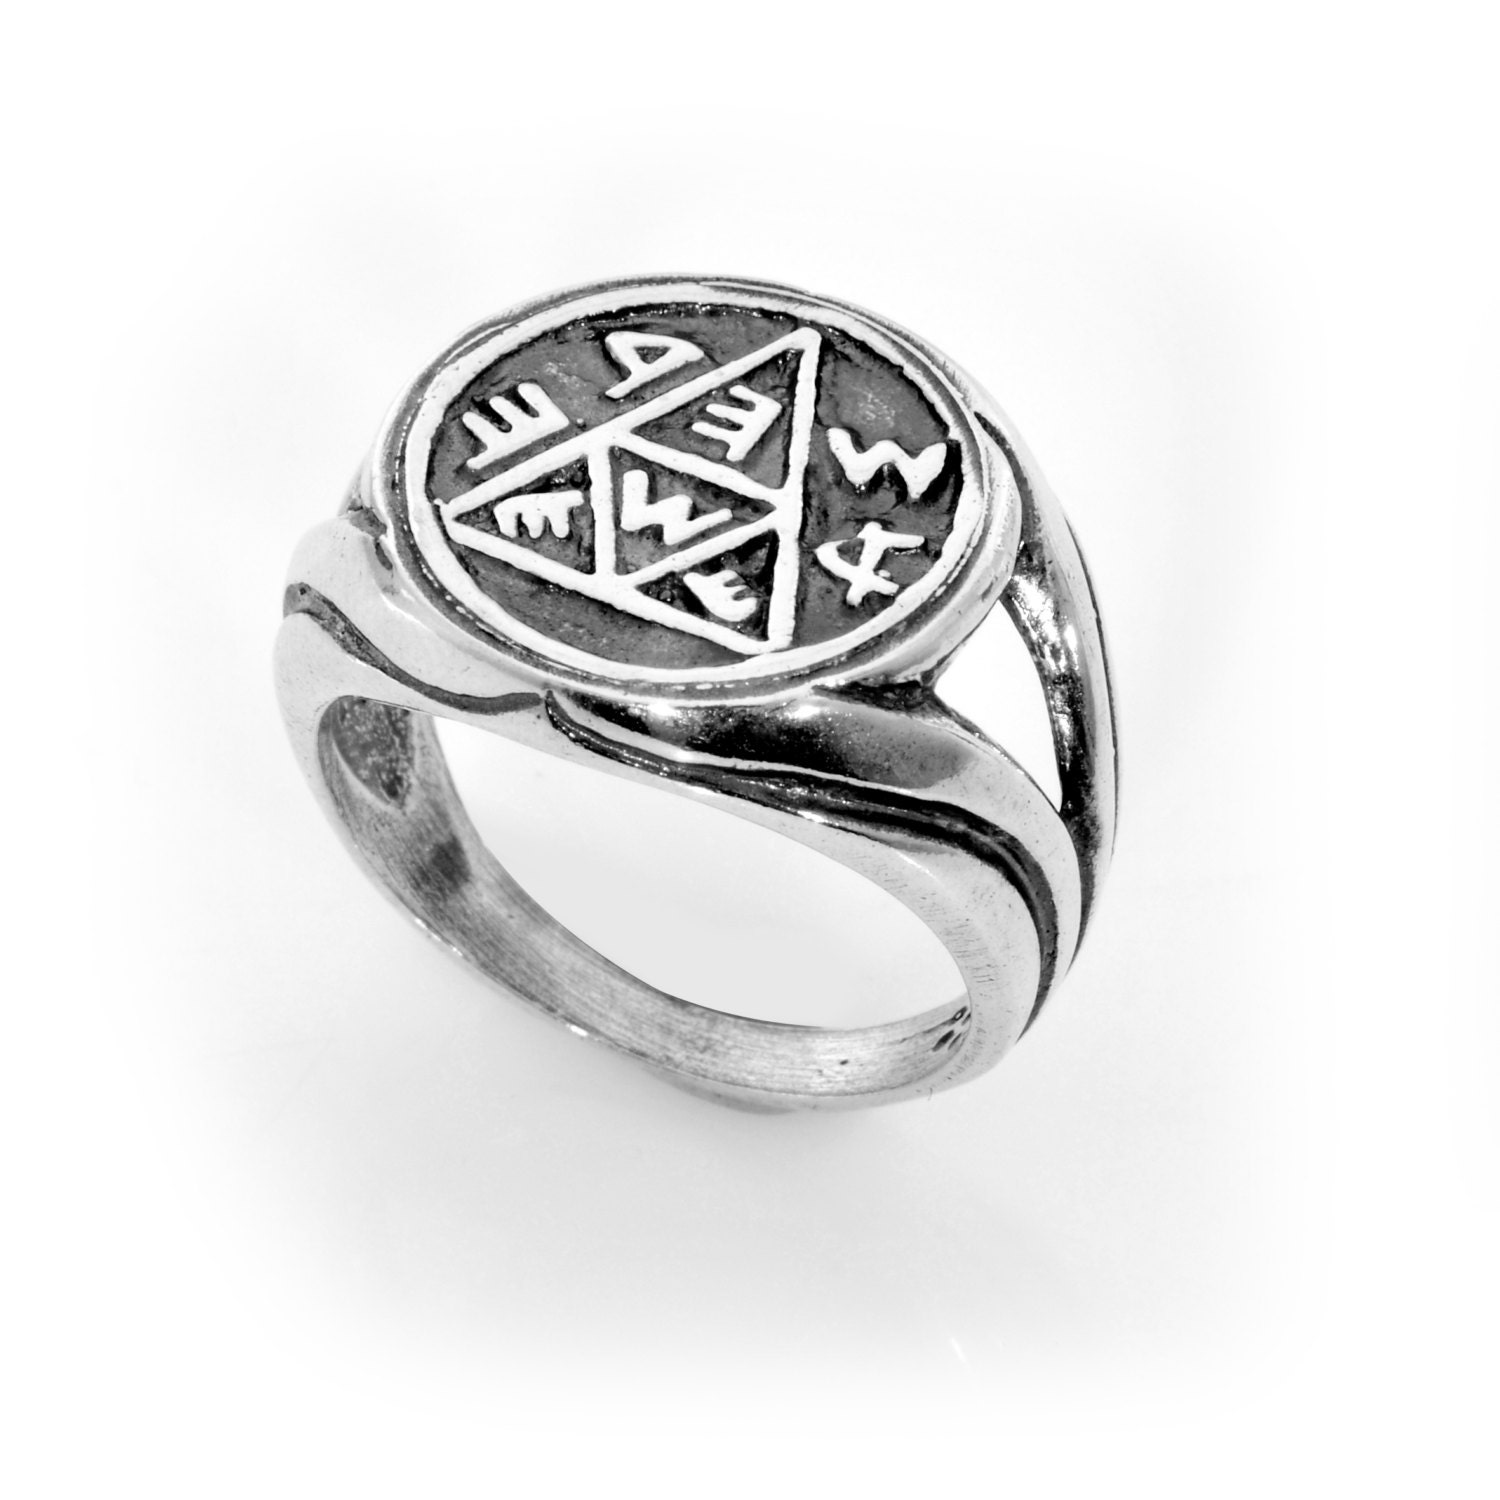 Pregnancy & Conception 925 Sterling Silver Amulet Ring Choose Size